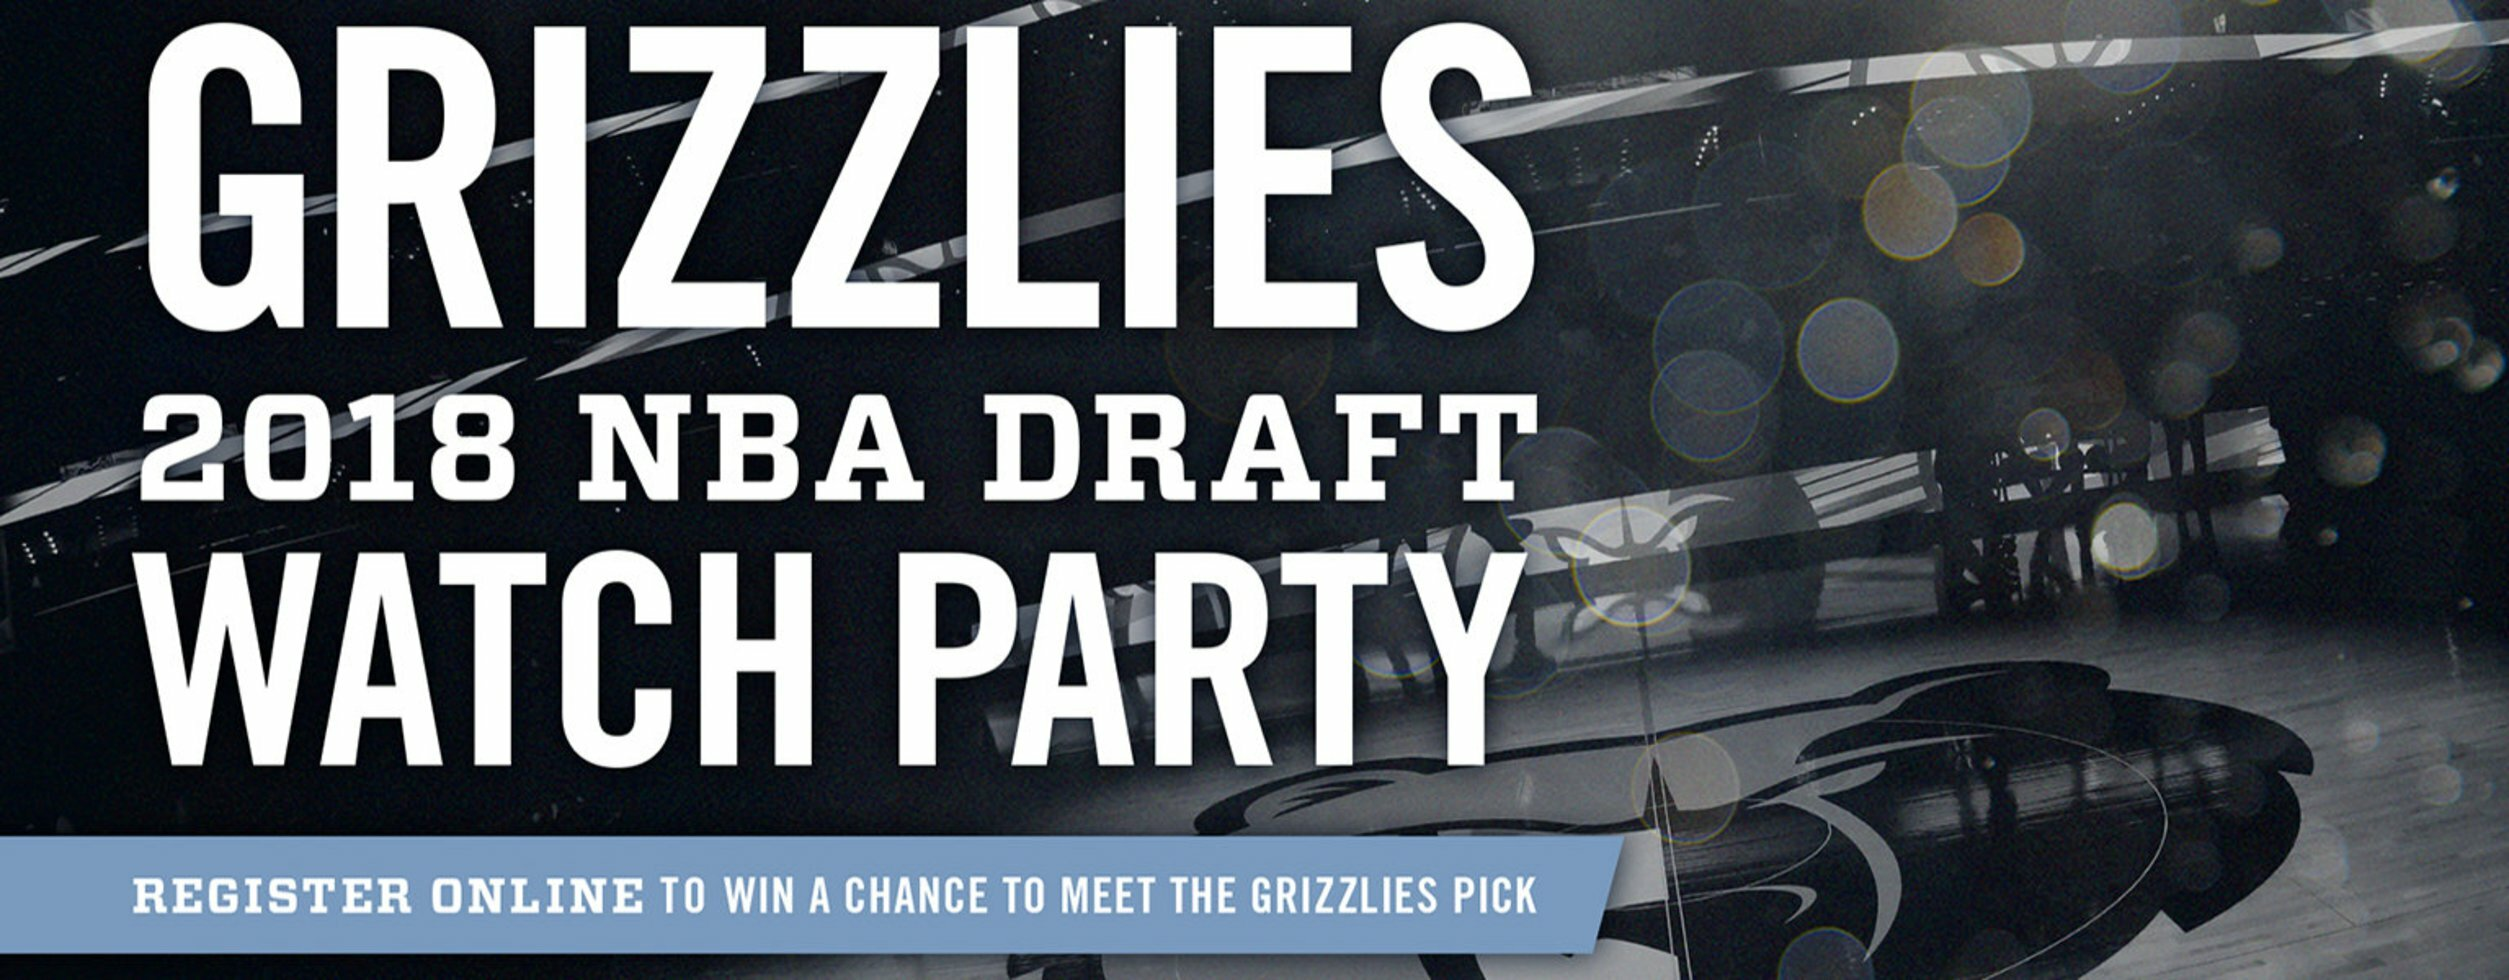 Grizzlies 2018 NBA Draft Watch Party